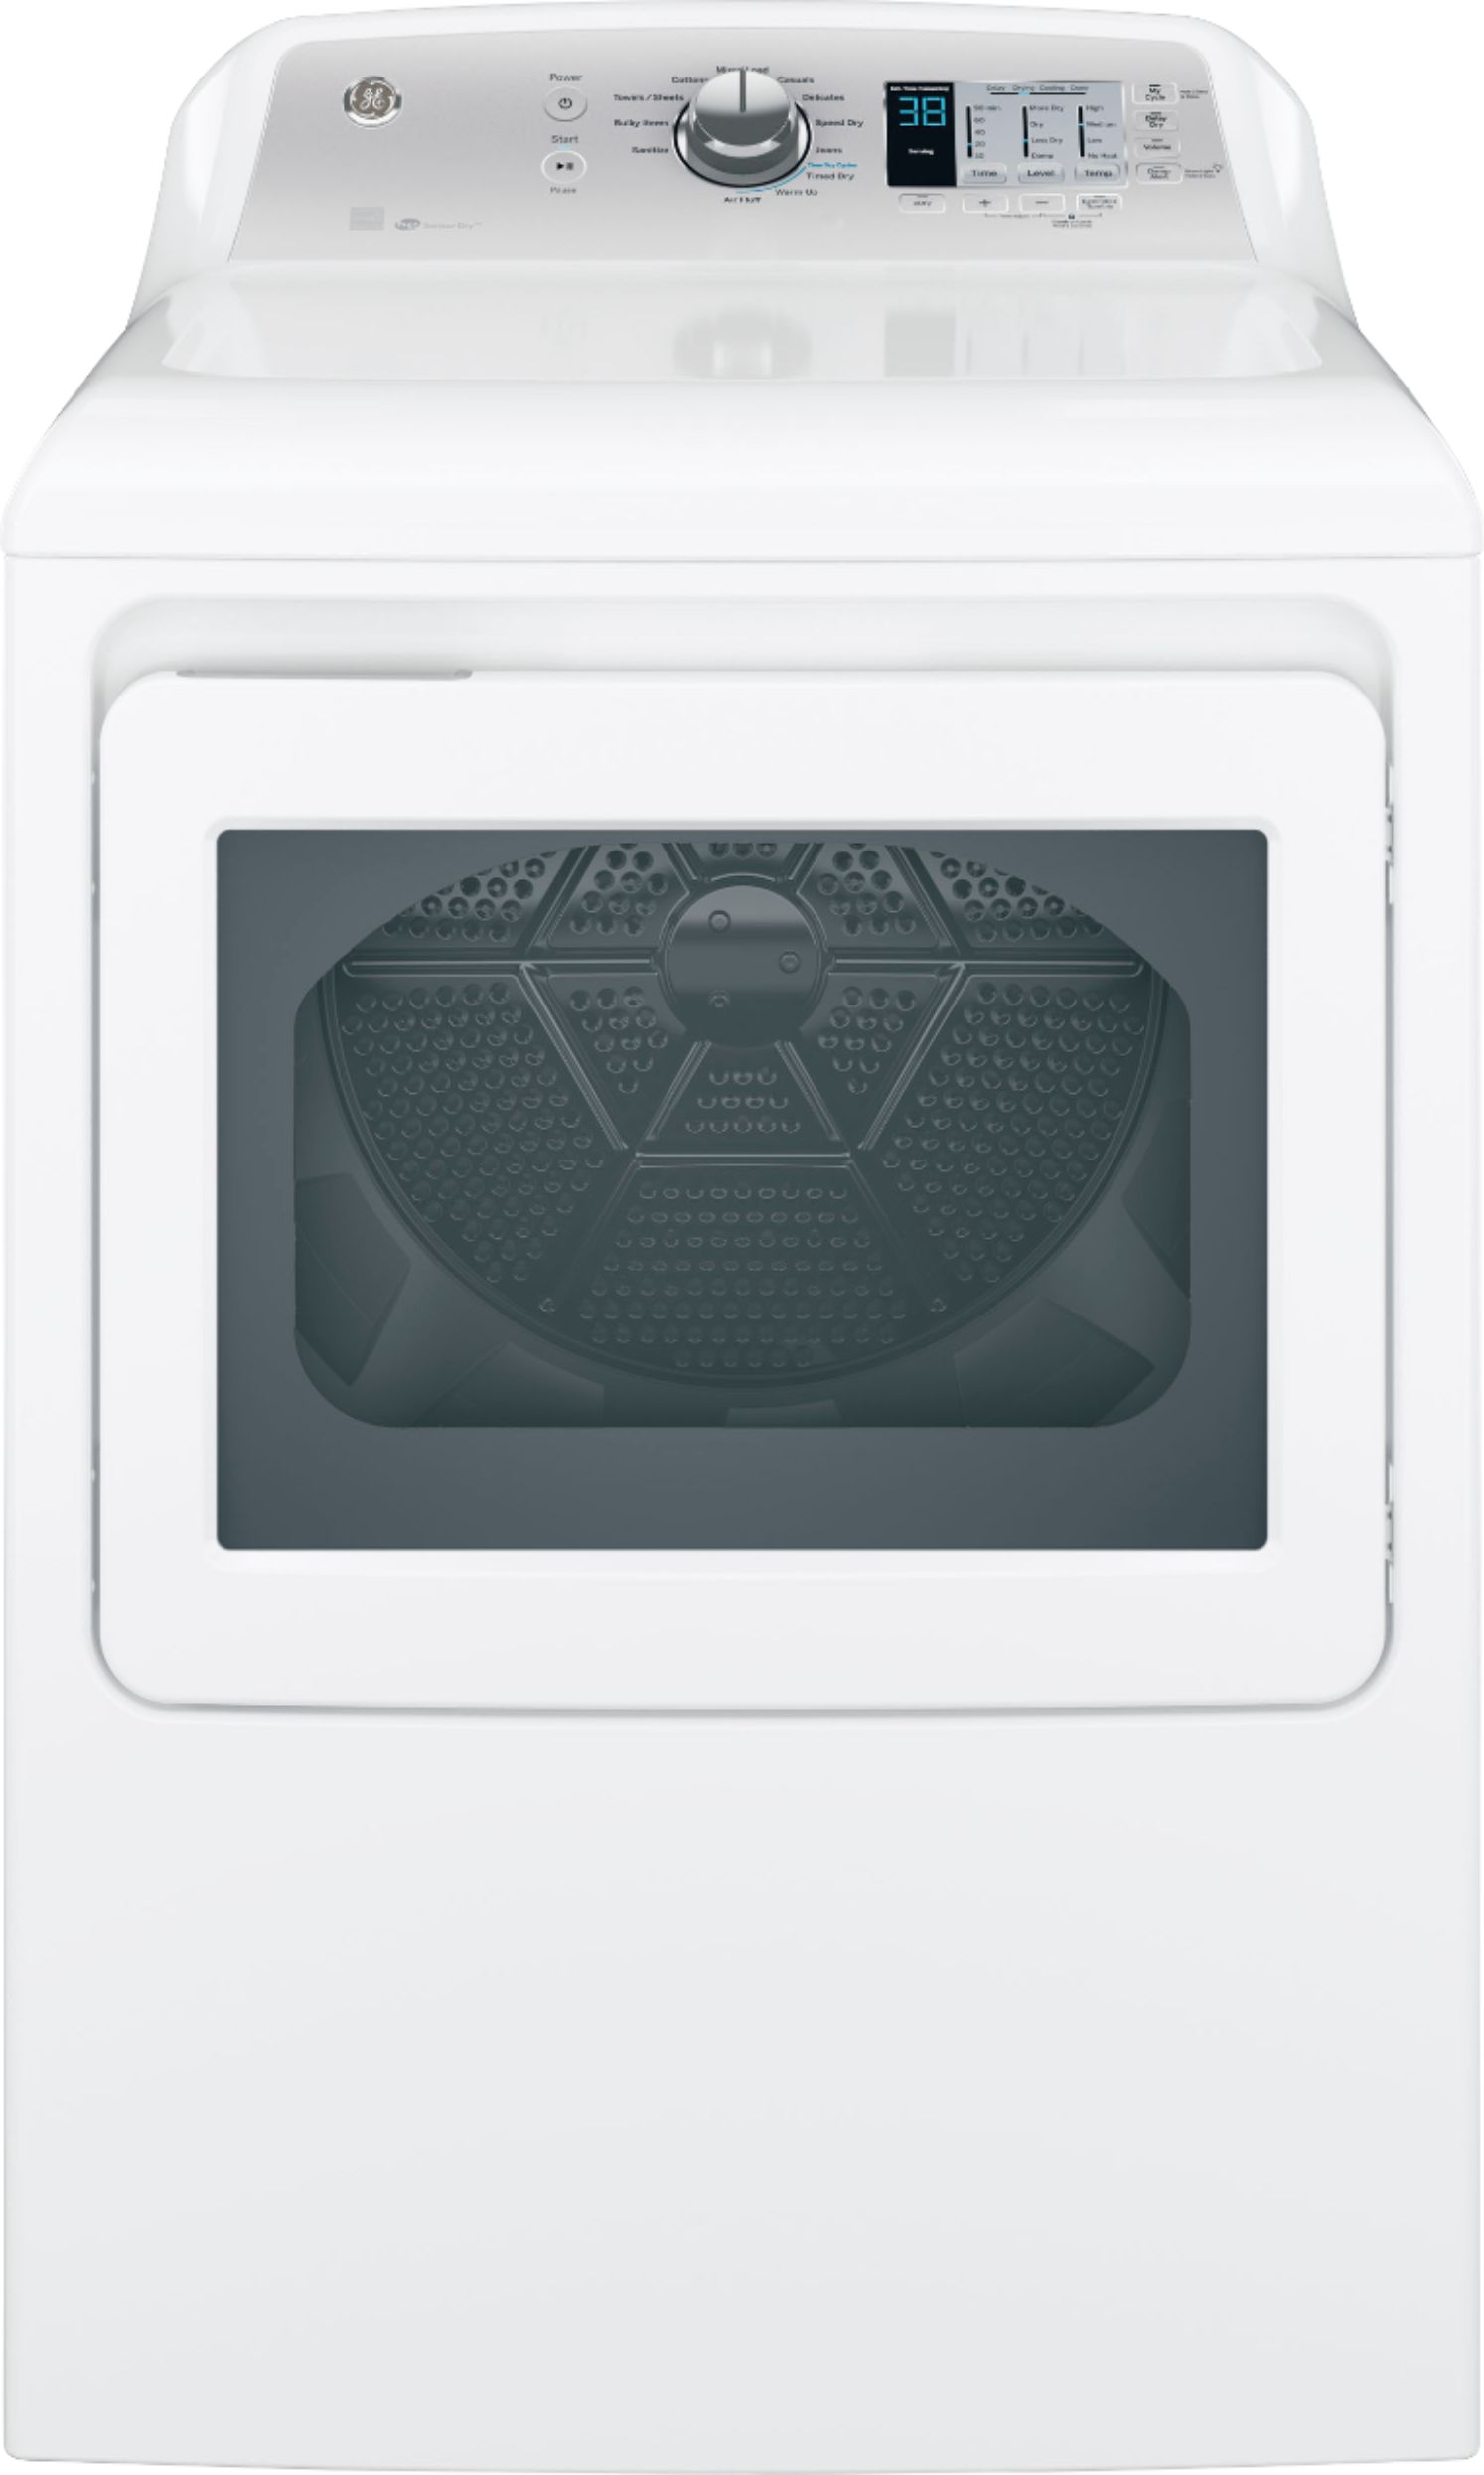 7.4 Cu Ft Electric Dryer